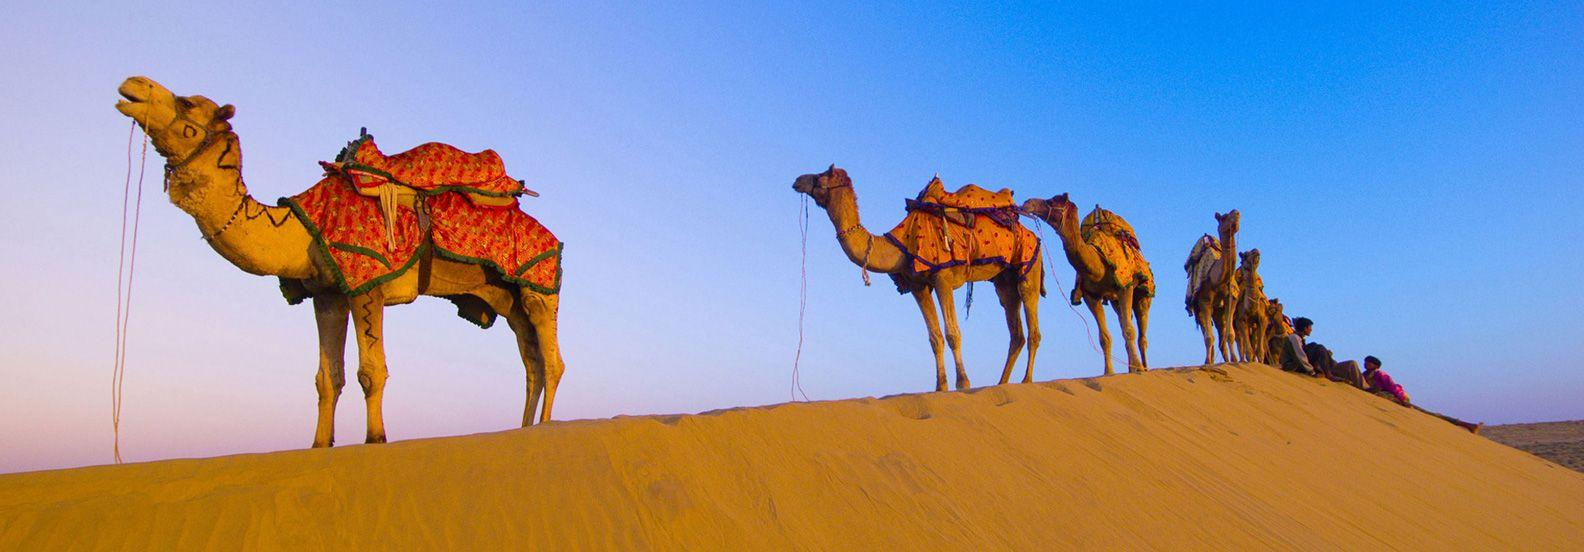 Pin by India Tour by Cabs on Rajasthan Tours - India Tour by Cabs ...